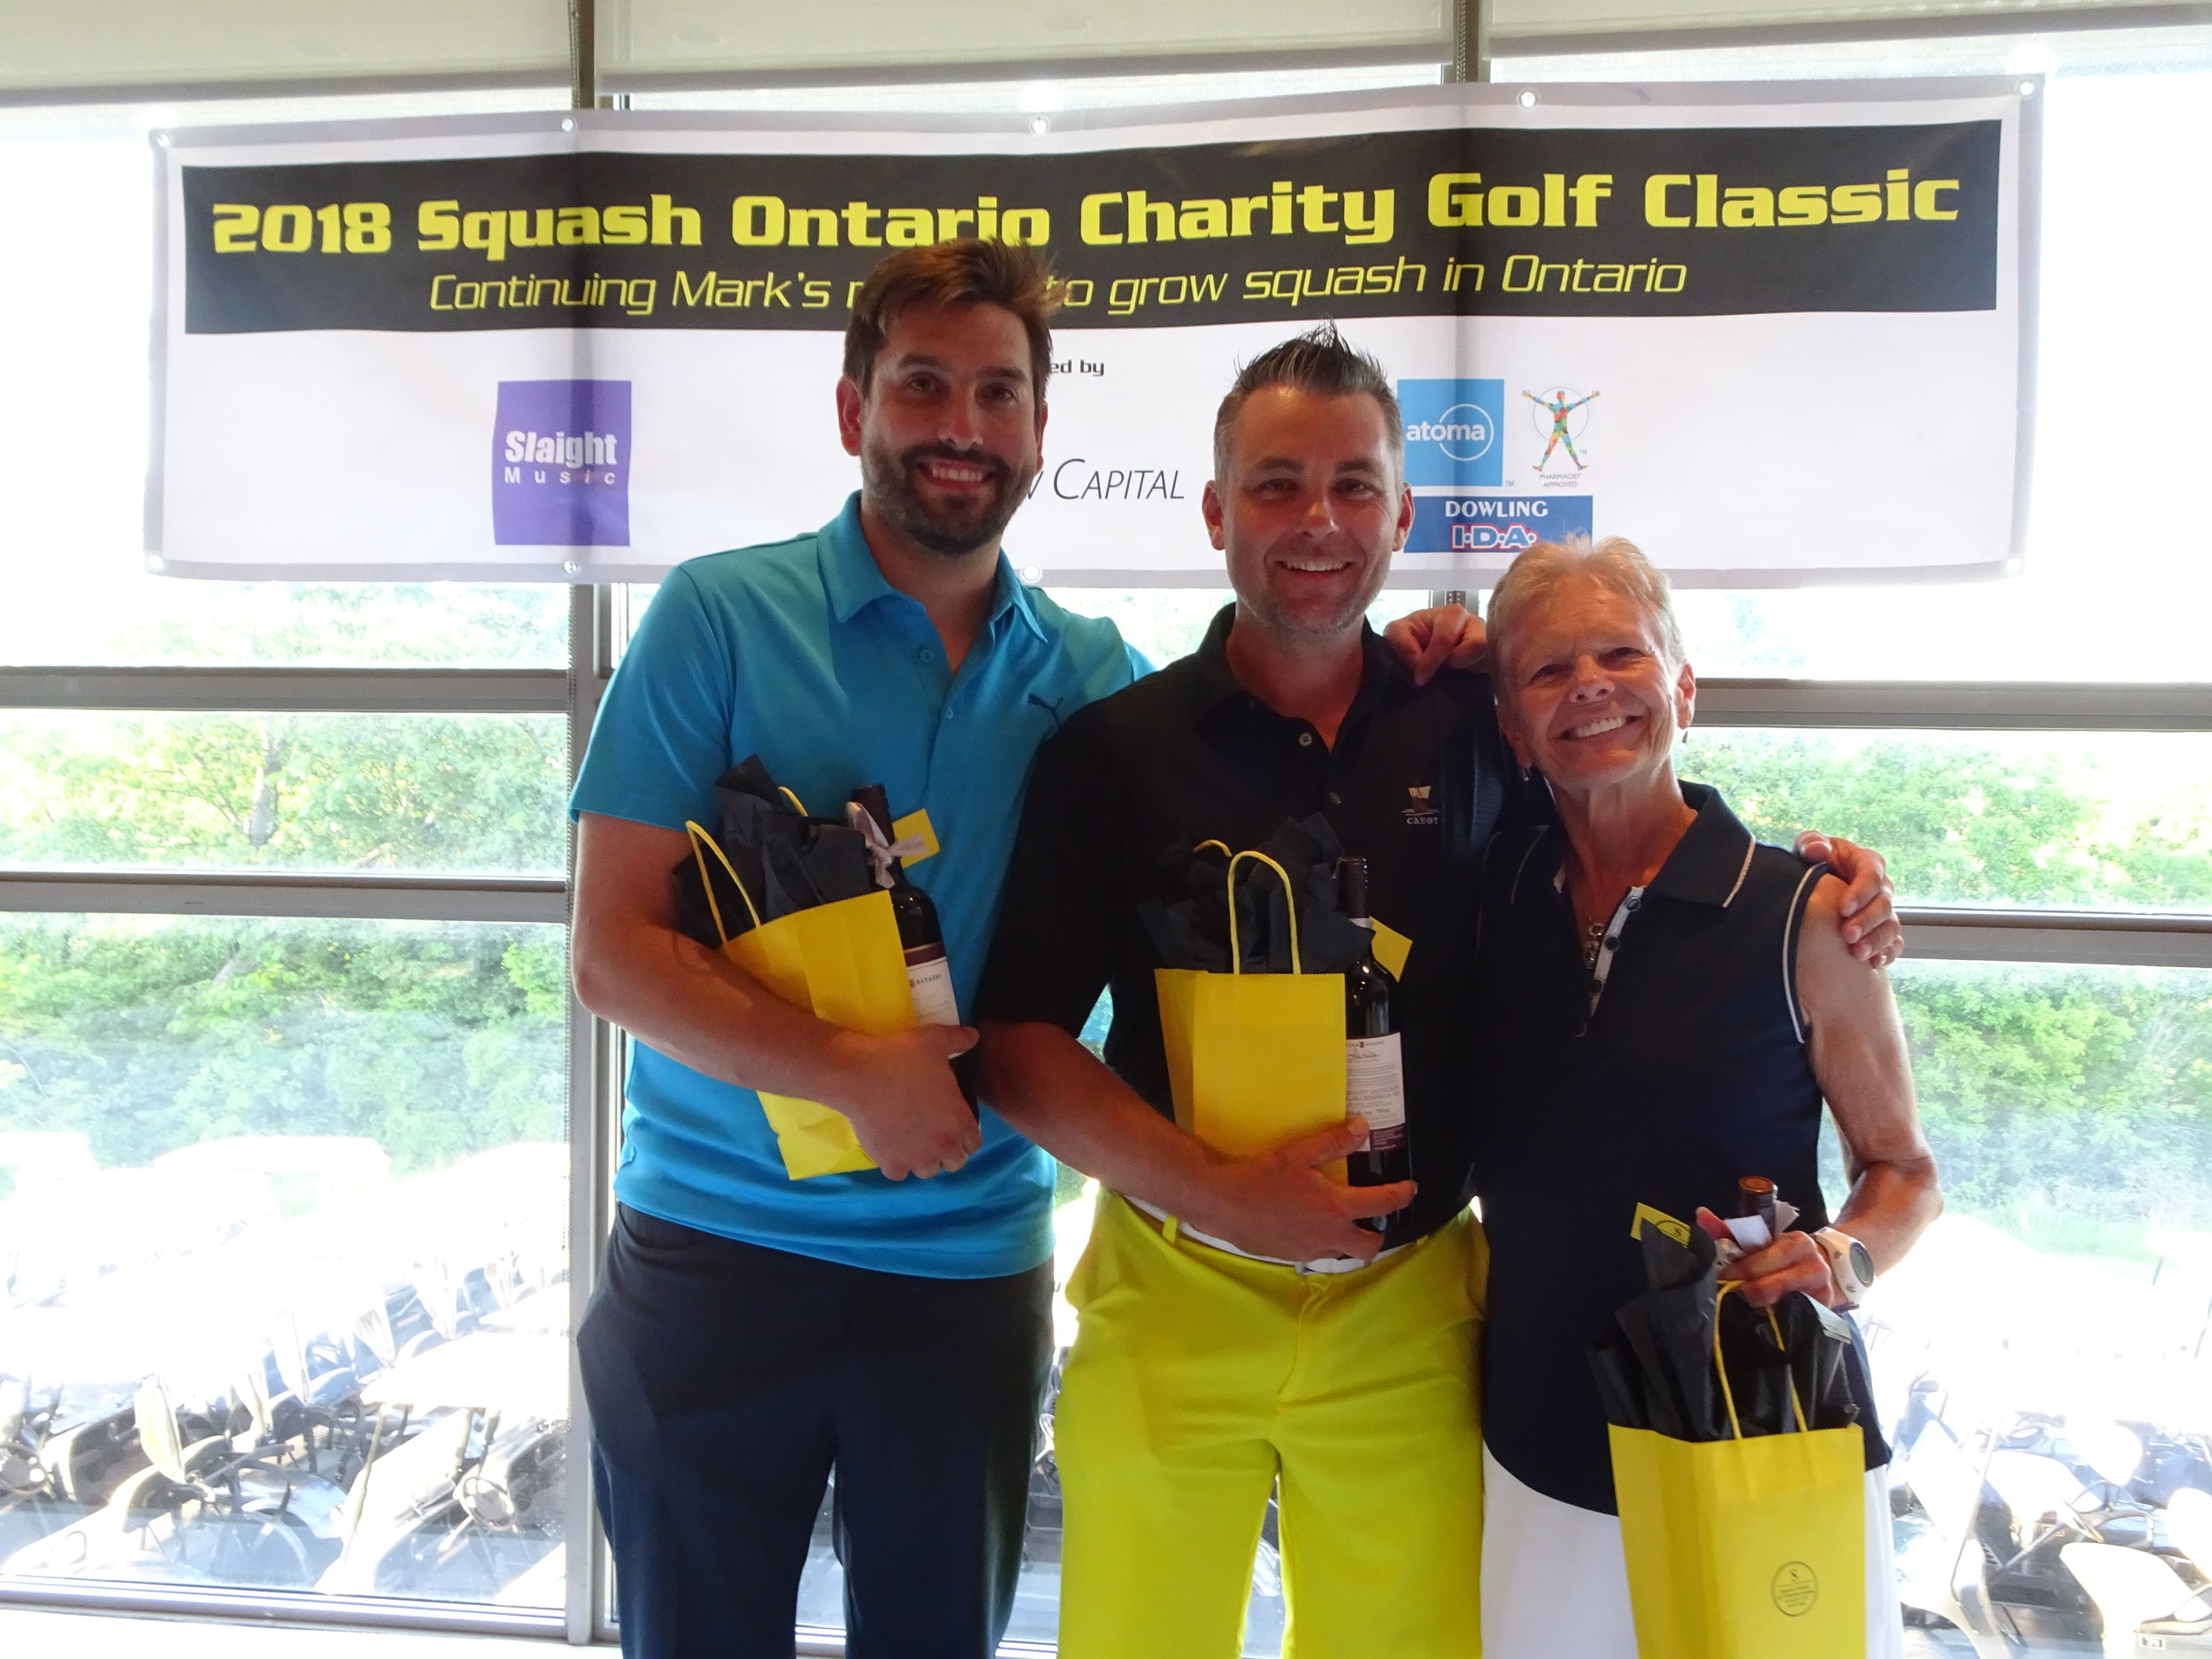 The Mixed Division Champions: Gus Anastanakinis, Craig Schiele, Joan Hill, Keith Williams (not pictured).